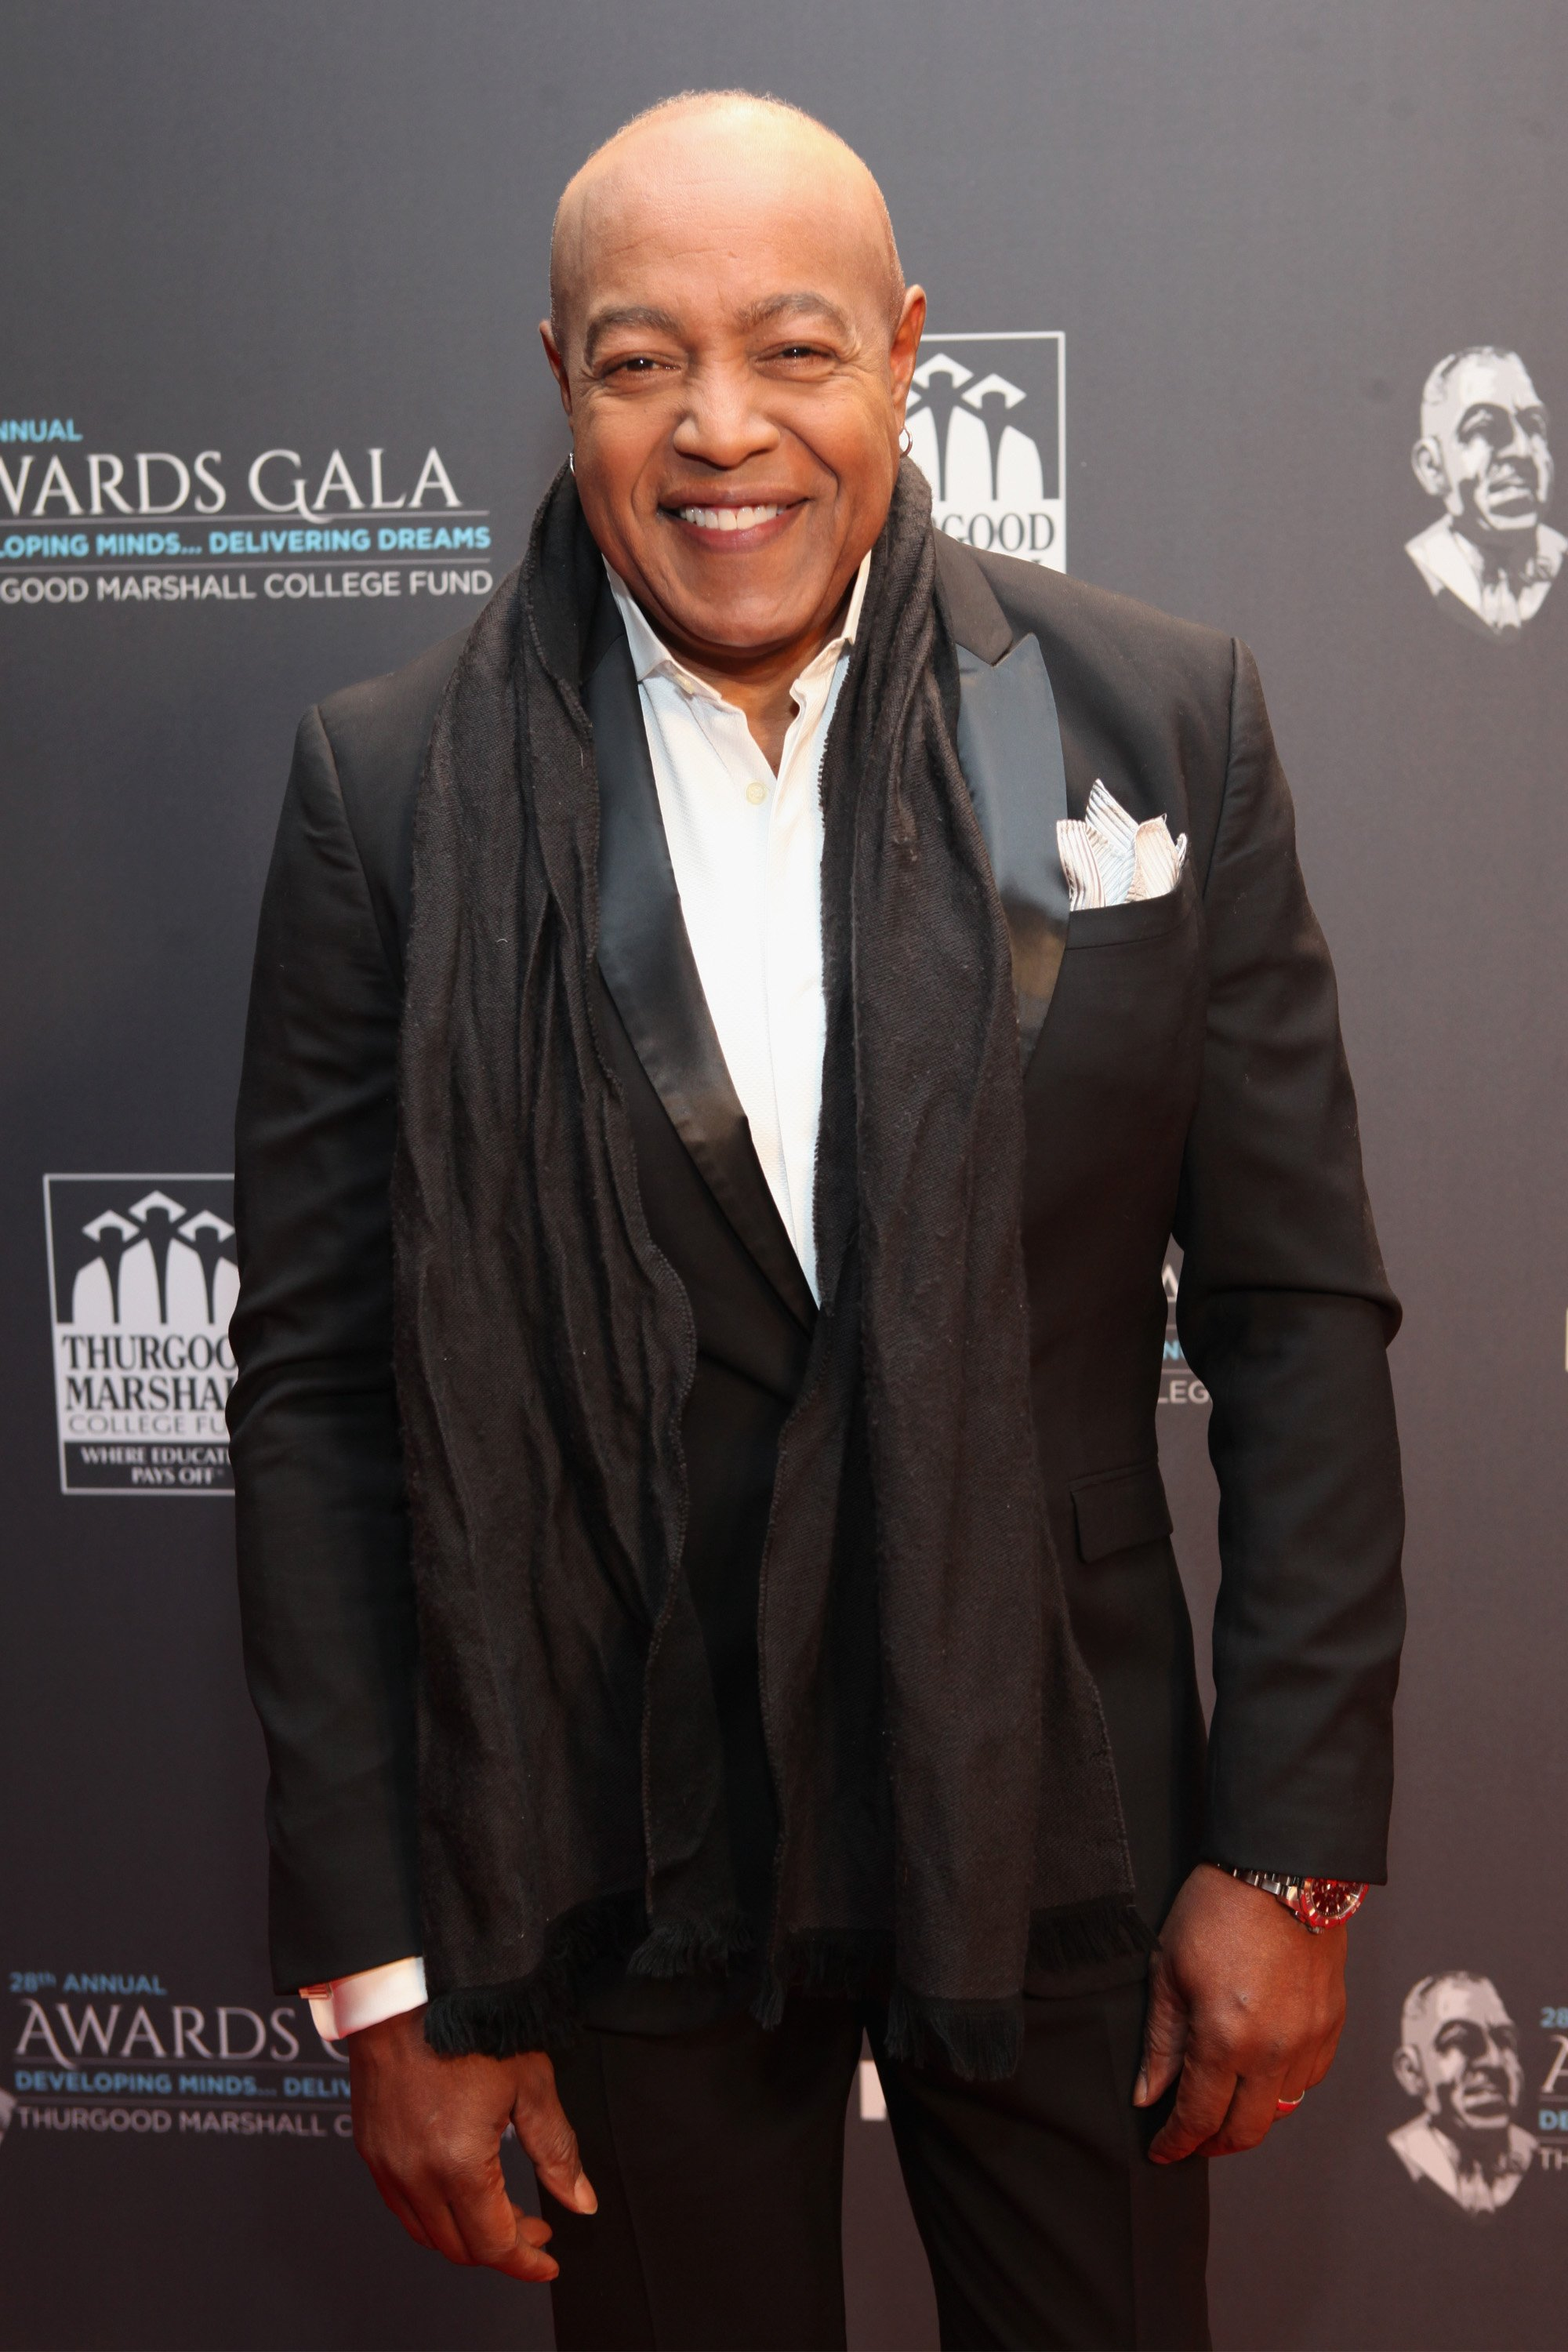 Peabo Bryson at the Thurgood Marshall College Fund 28th Annual Awards Gala on Nov. 21, 2016 in Washington, DC. | Photo: Getty Images